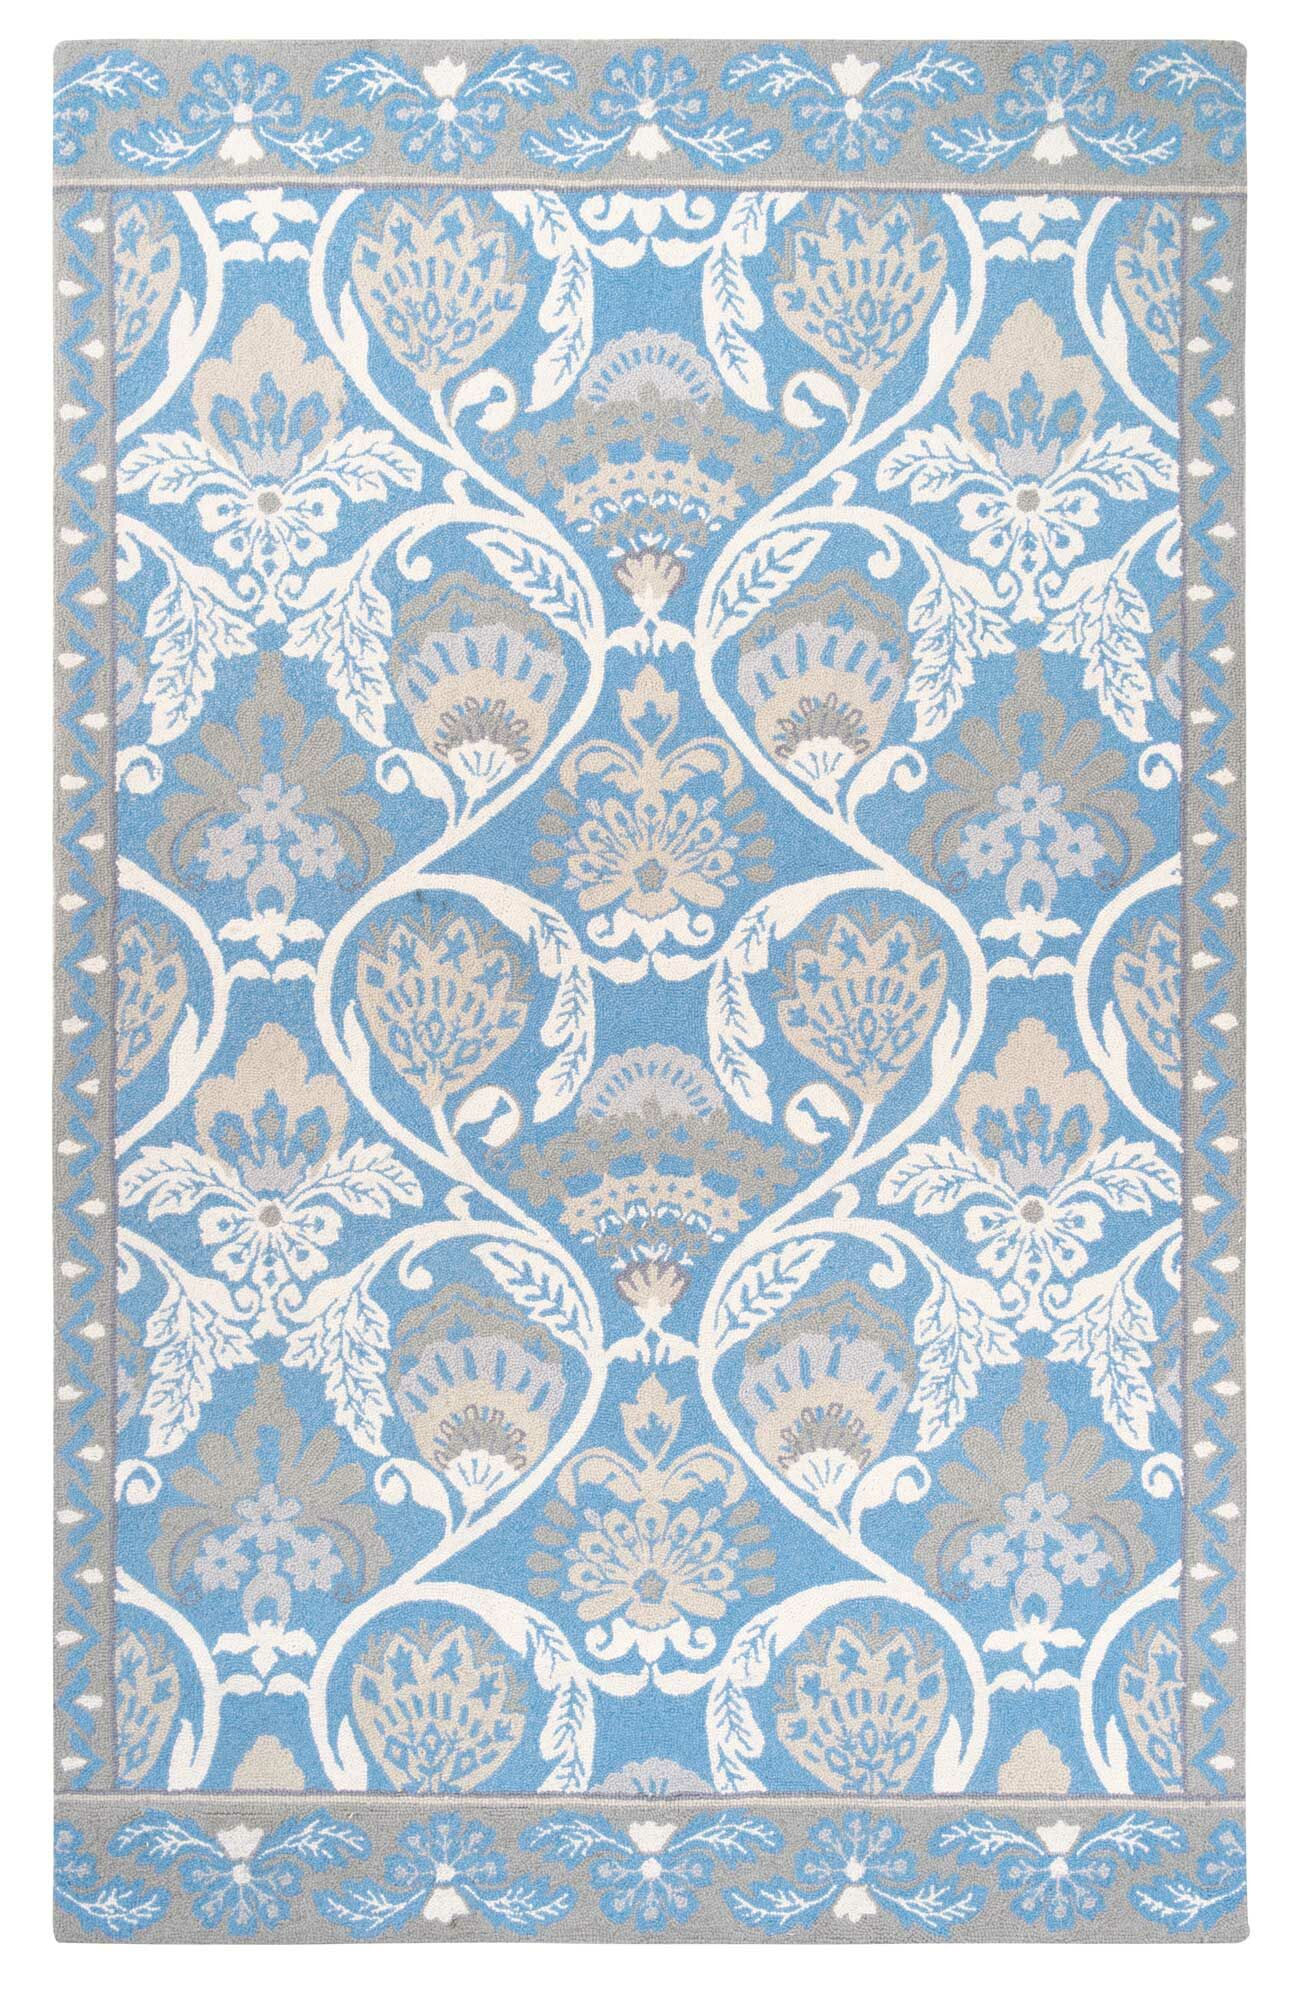 Quinn Hand-Hooked Blue Area Rug Rug Size: Rectangle 4' x 6'